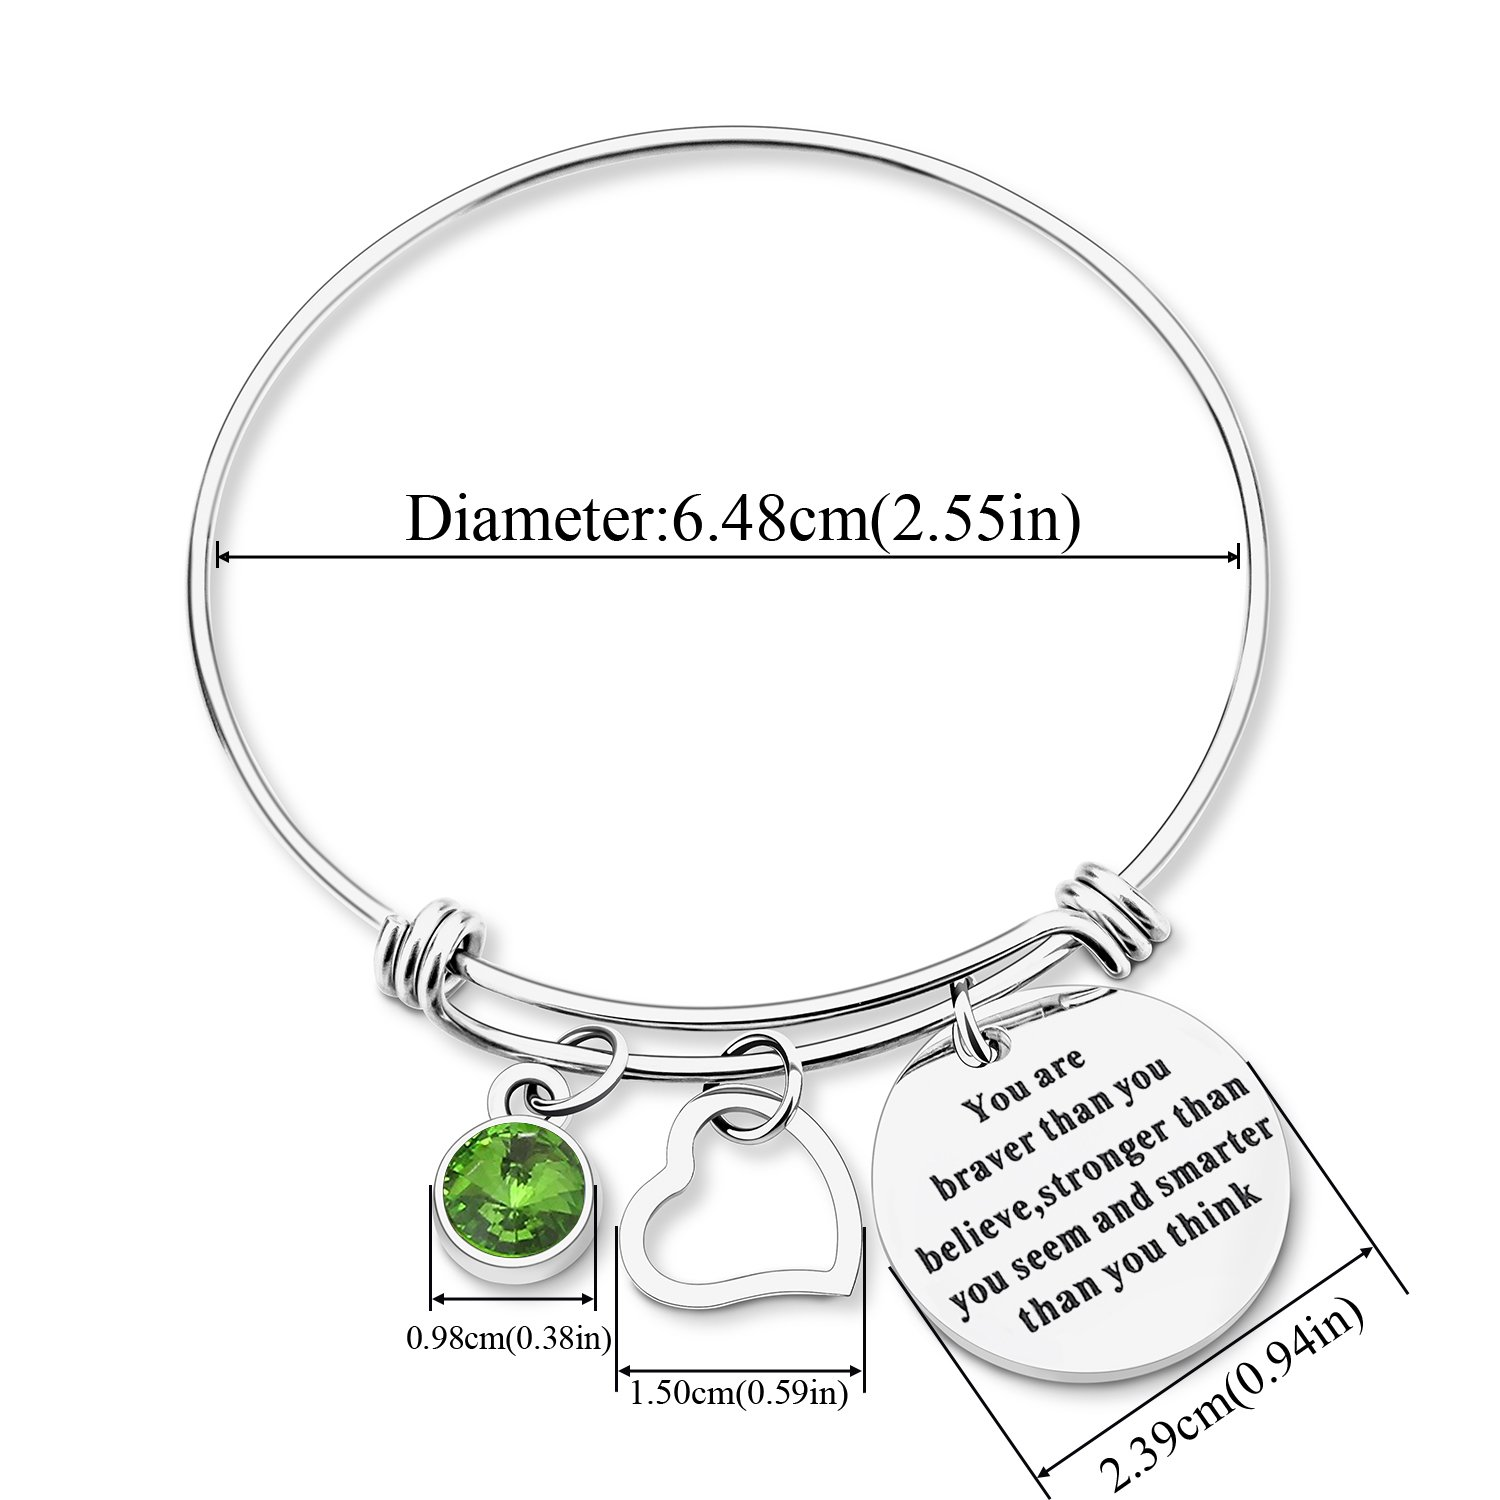 Yoomarket ''You are braver than you believe Inspirational Birthstone and Heart Adjustable Charm Bangle Bracelet Stainless Steel Womens Jewelry Birthday Girls Gifts(08-Aug.-Peridot) by Yoomarket (Image #4)